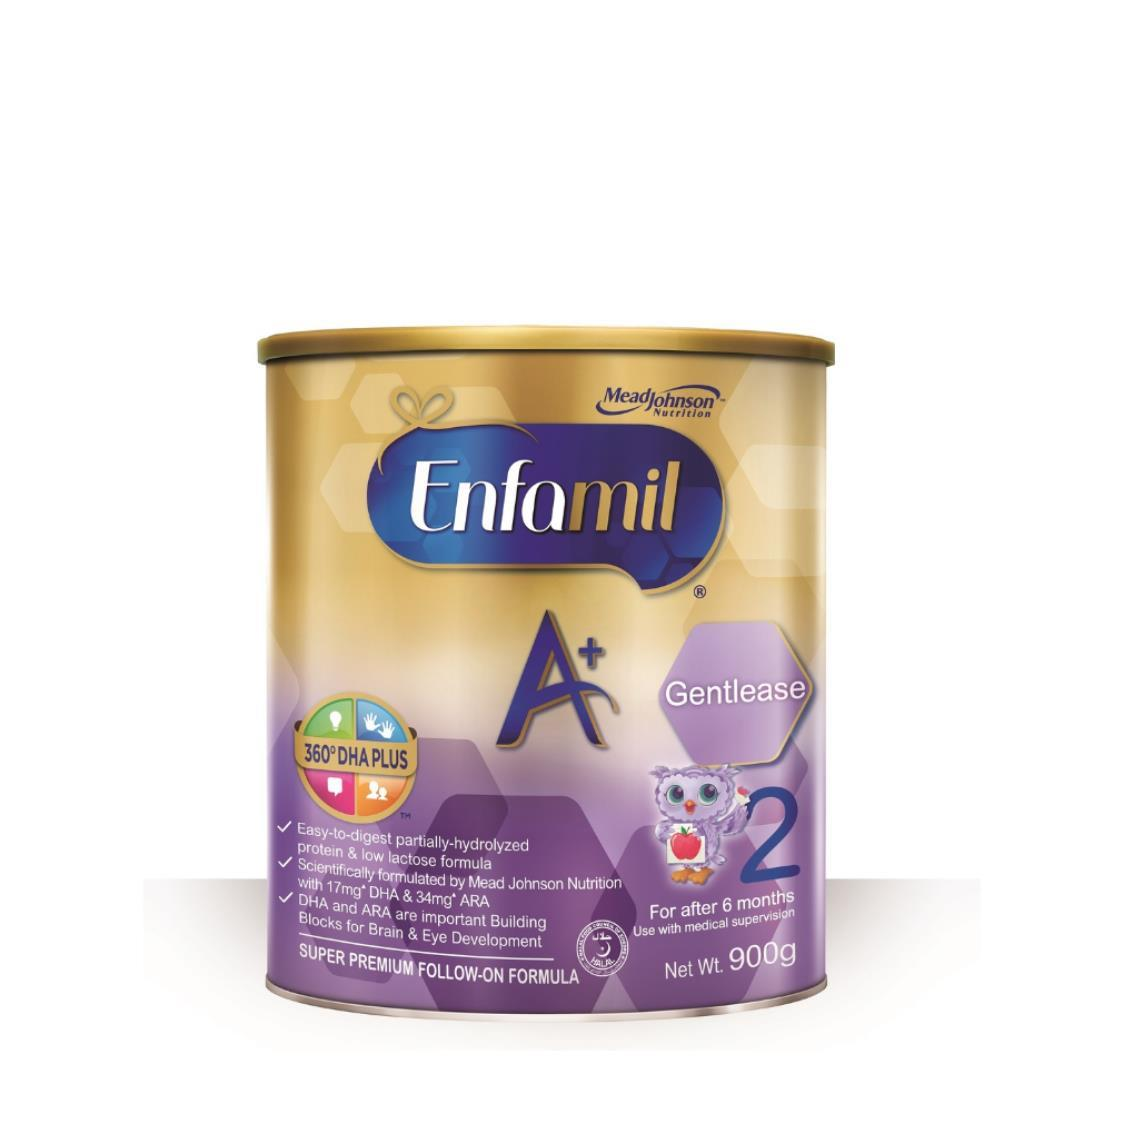 Enfamil A Gentlease Stage 2 900g Metro Department Store Frisolac Gold 900gr